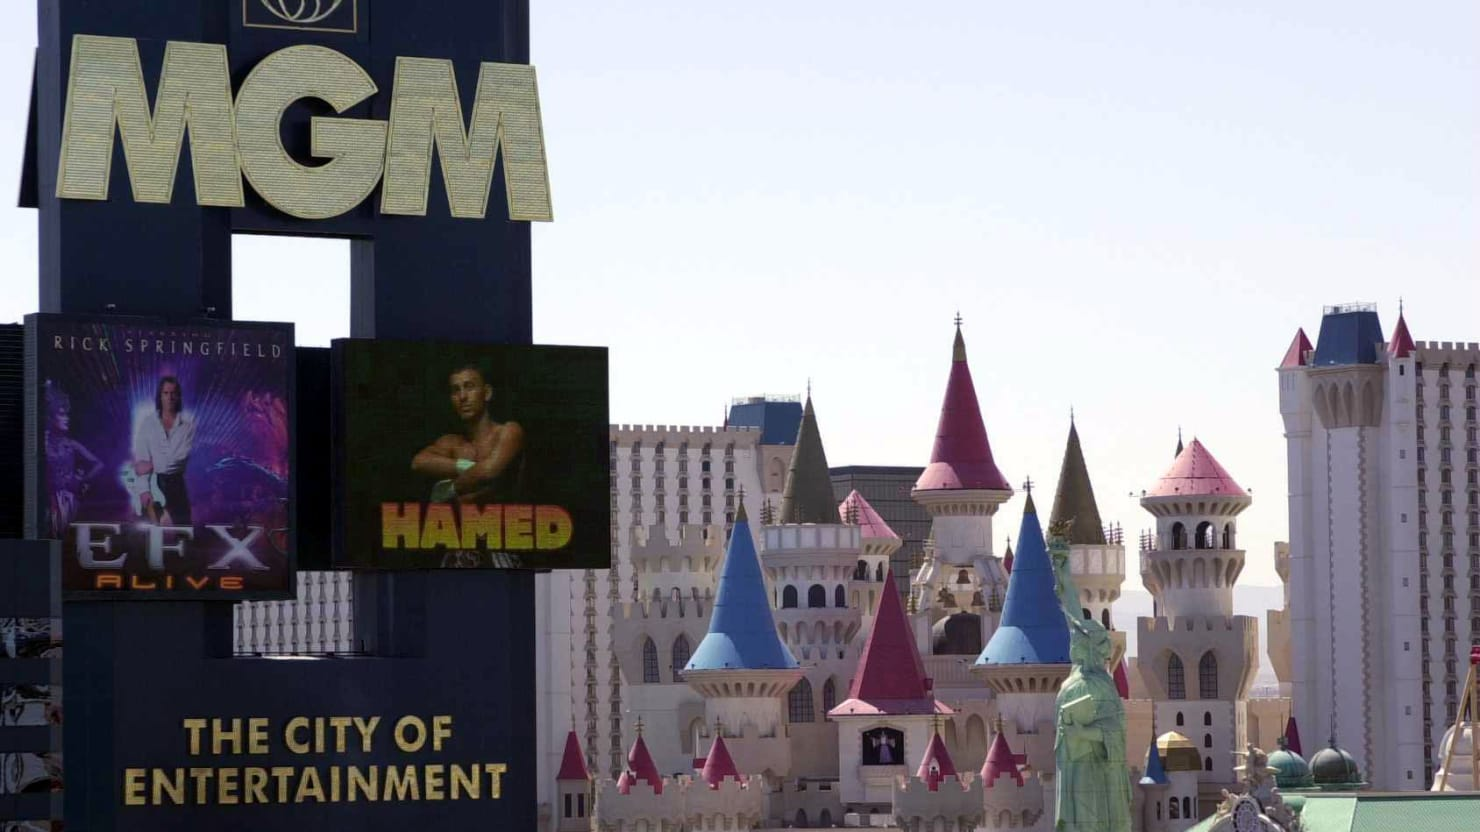 Personal Data of 10.6M MGM Hotel Guests Leaked to Popular Hacking Forum